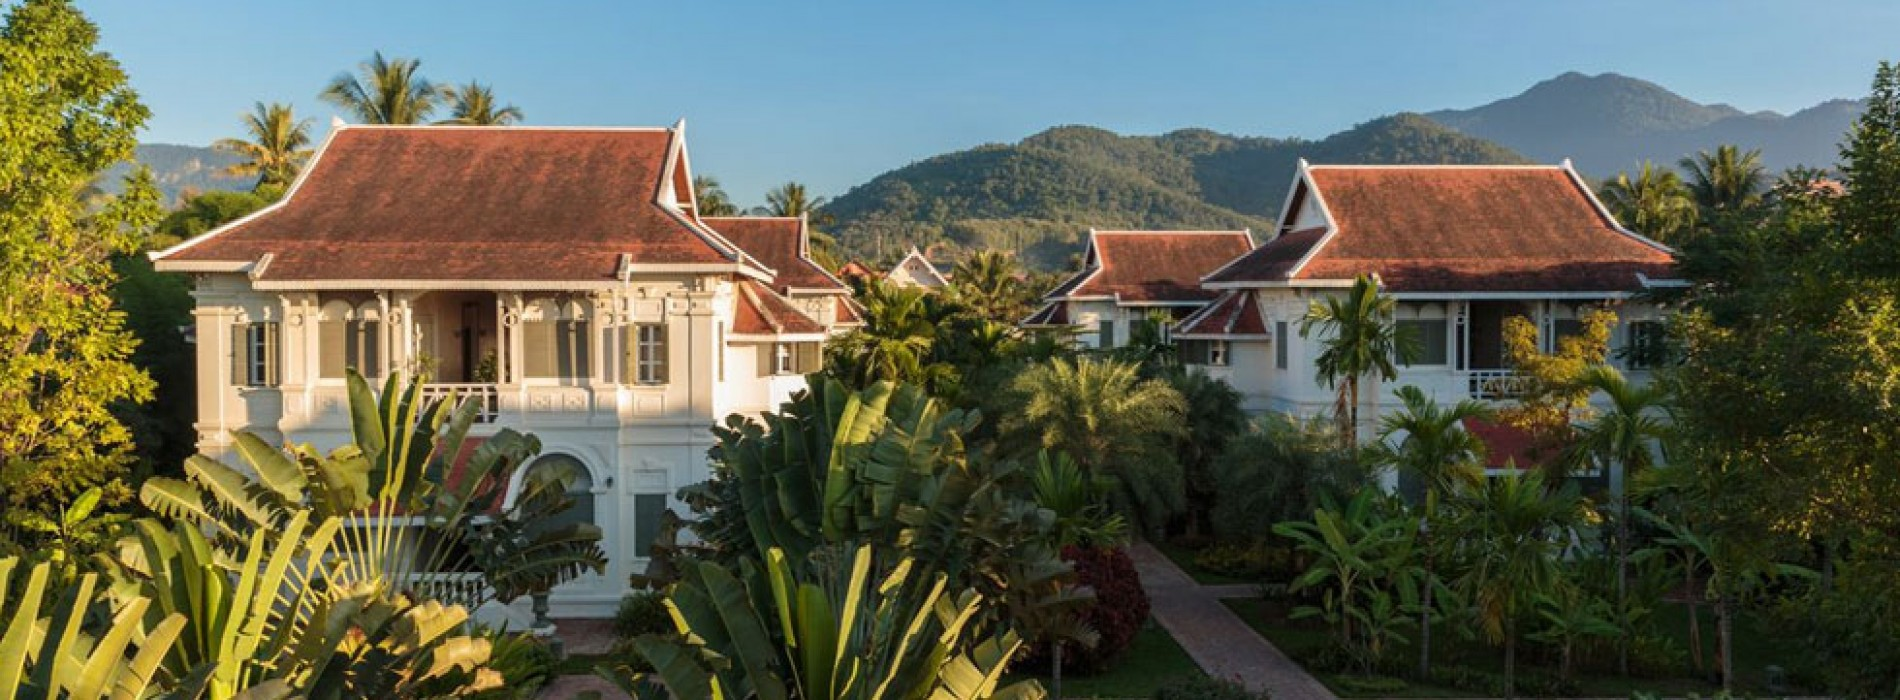 Live Like a local this March with New Neighborhood Guides from Small Luxury Hotel Of The World™